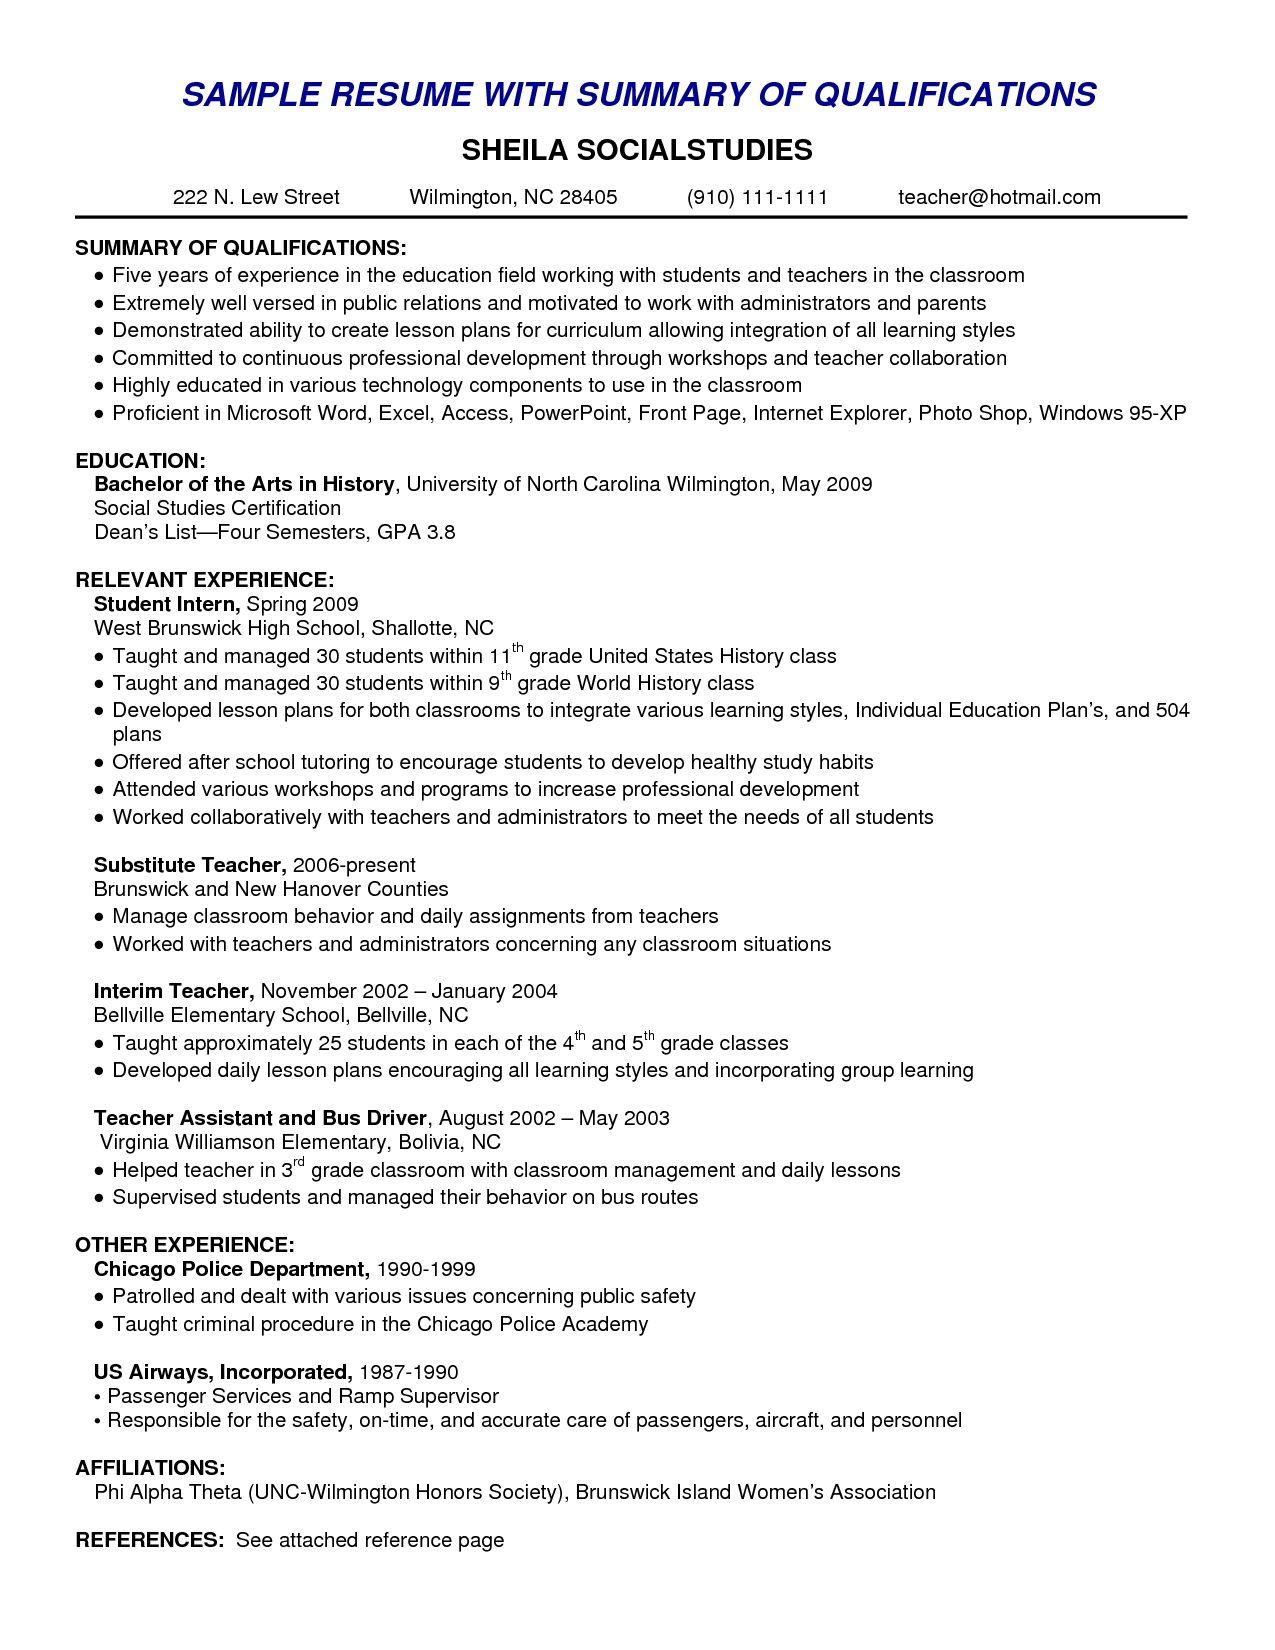 Resume Examples With Summary #examples #resume #resumeexamples ...